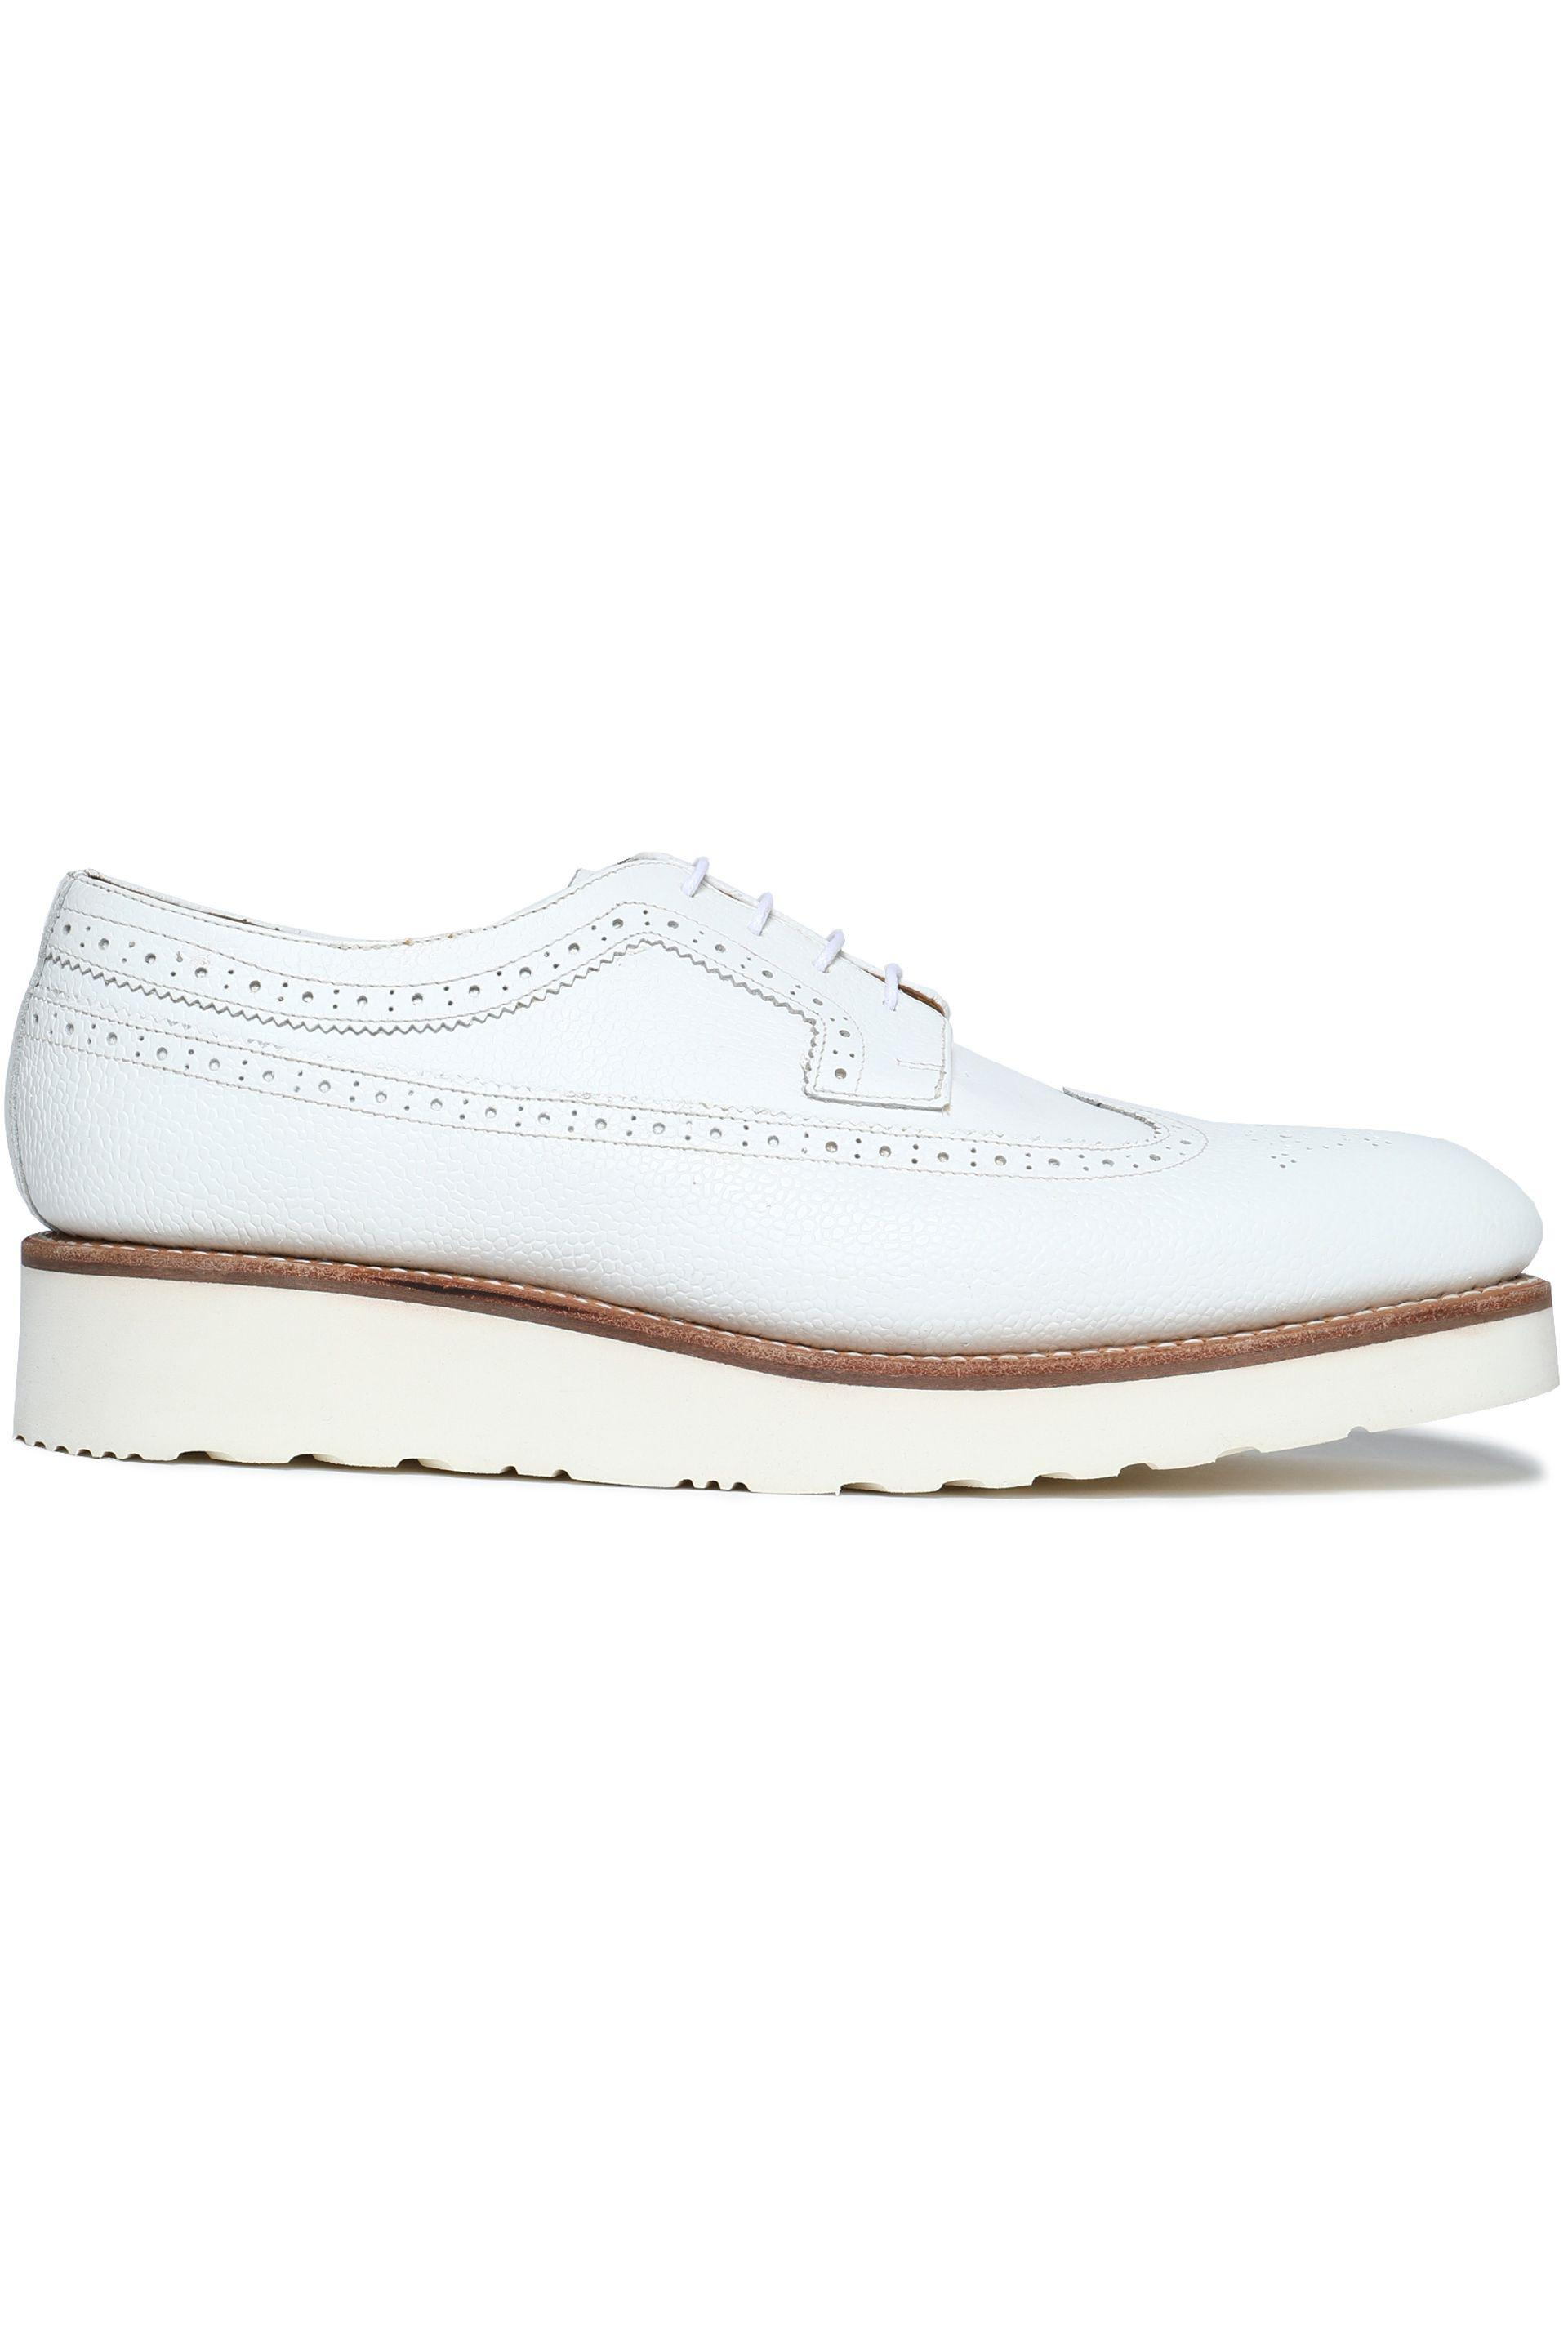 f92d339f8a8 Grenson Woman Perforated Leather Brogues White in White - Lyst